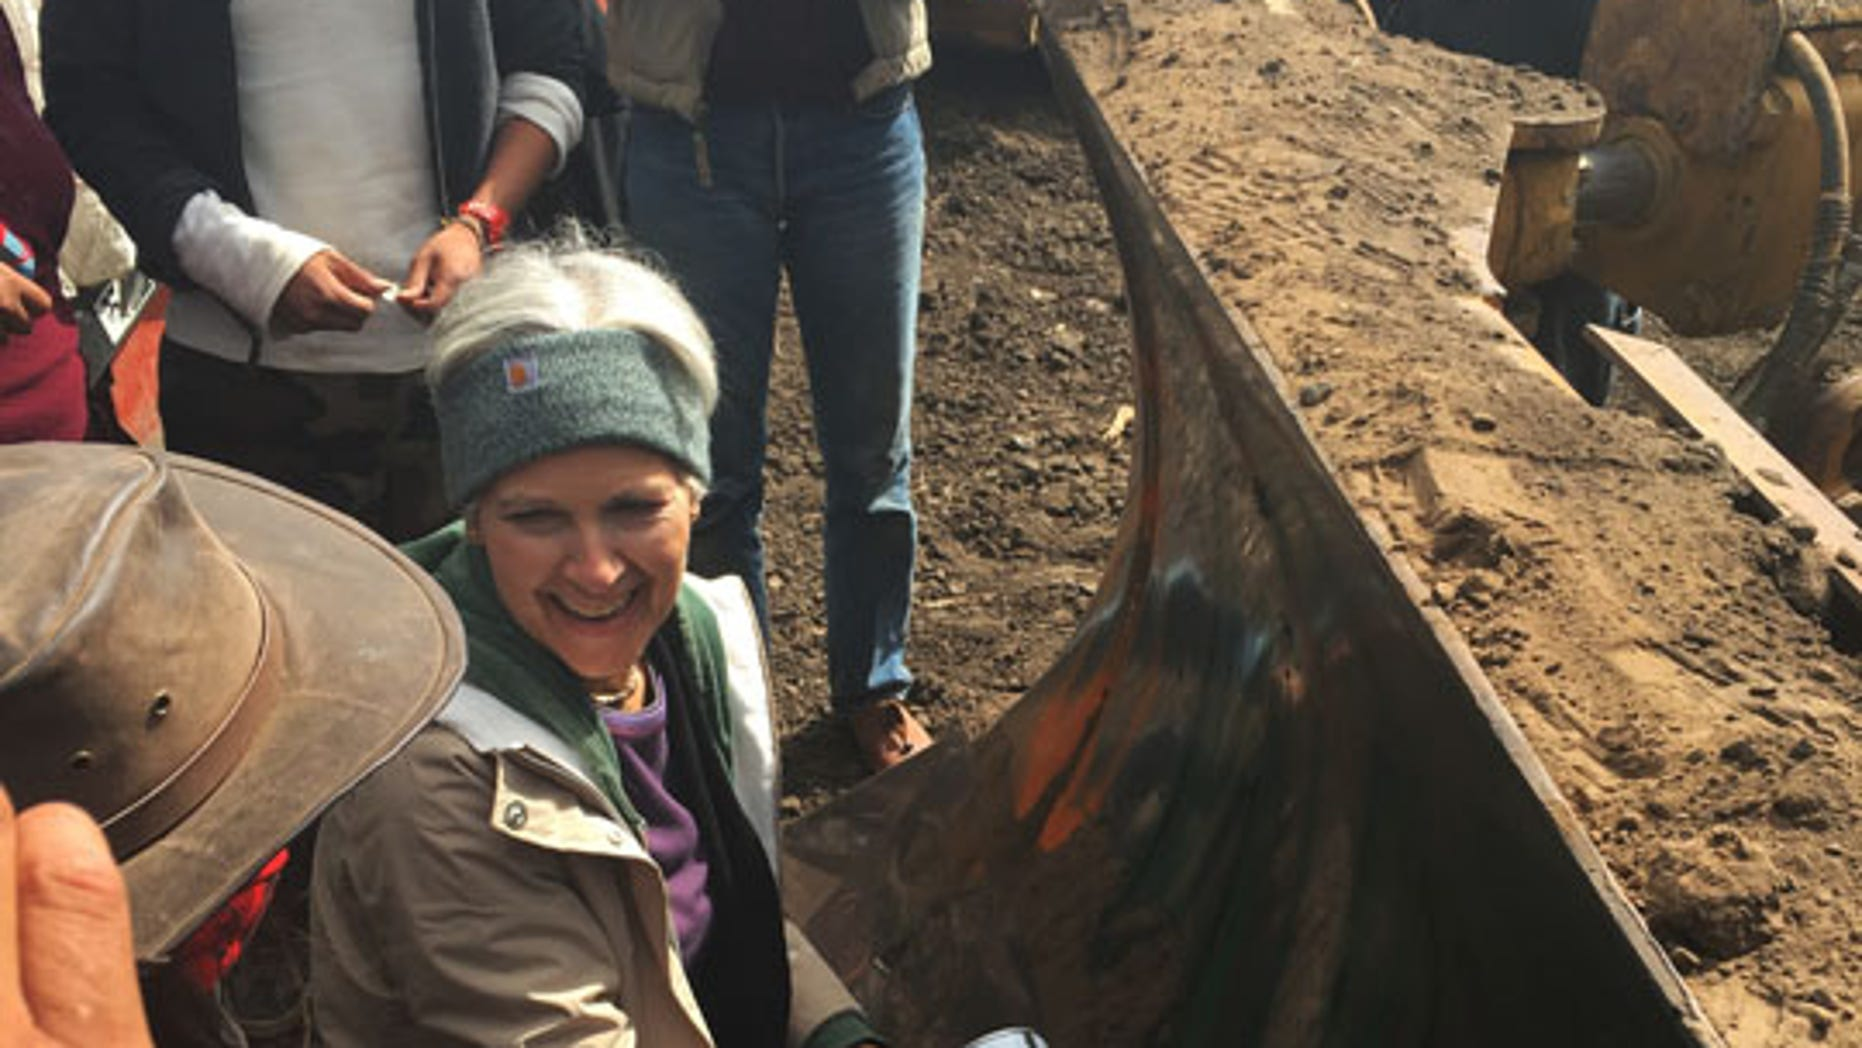 """Sept. 6, 2016: Green Party presidential candidate Jill Stein prepares to spray-paint """"I approve this message"""" in red paint on the blade of a bulldozer at a protest against the Dakota Access Pipeline in the area of Morton County, N.D."""